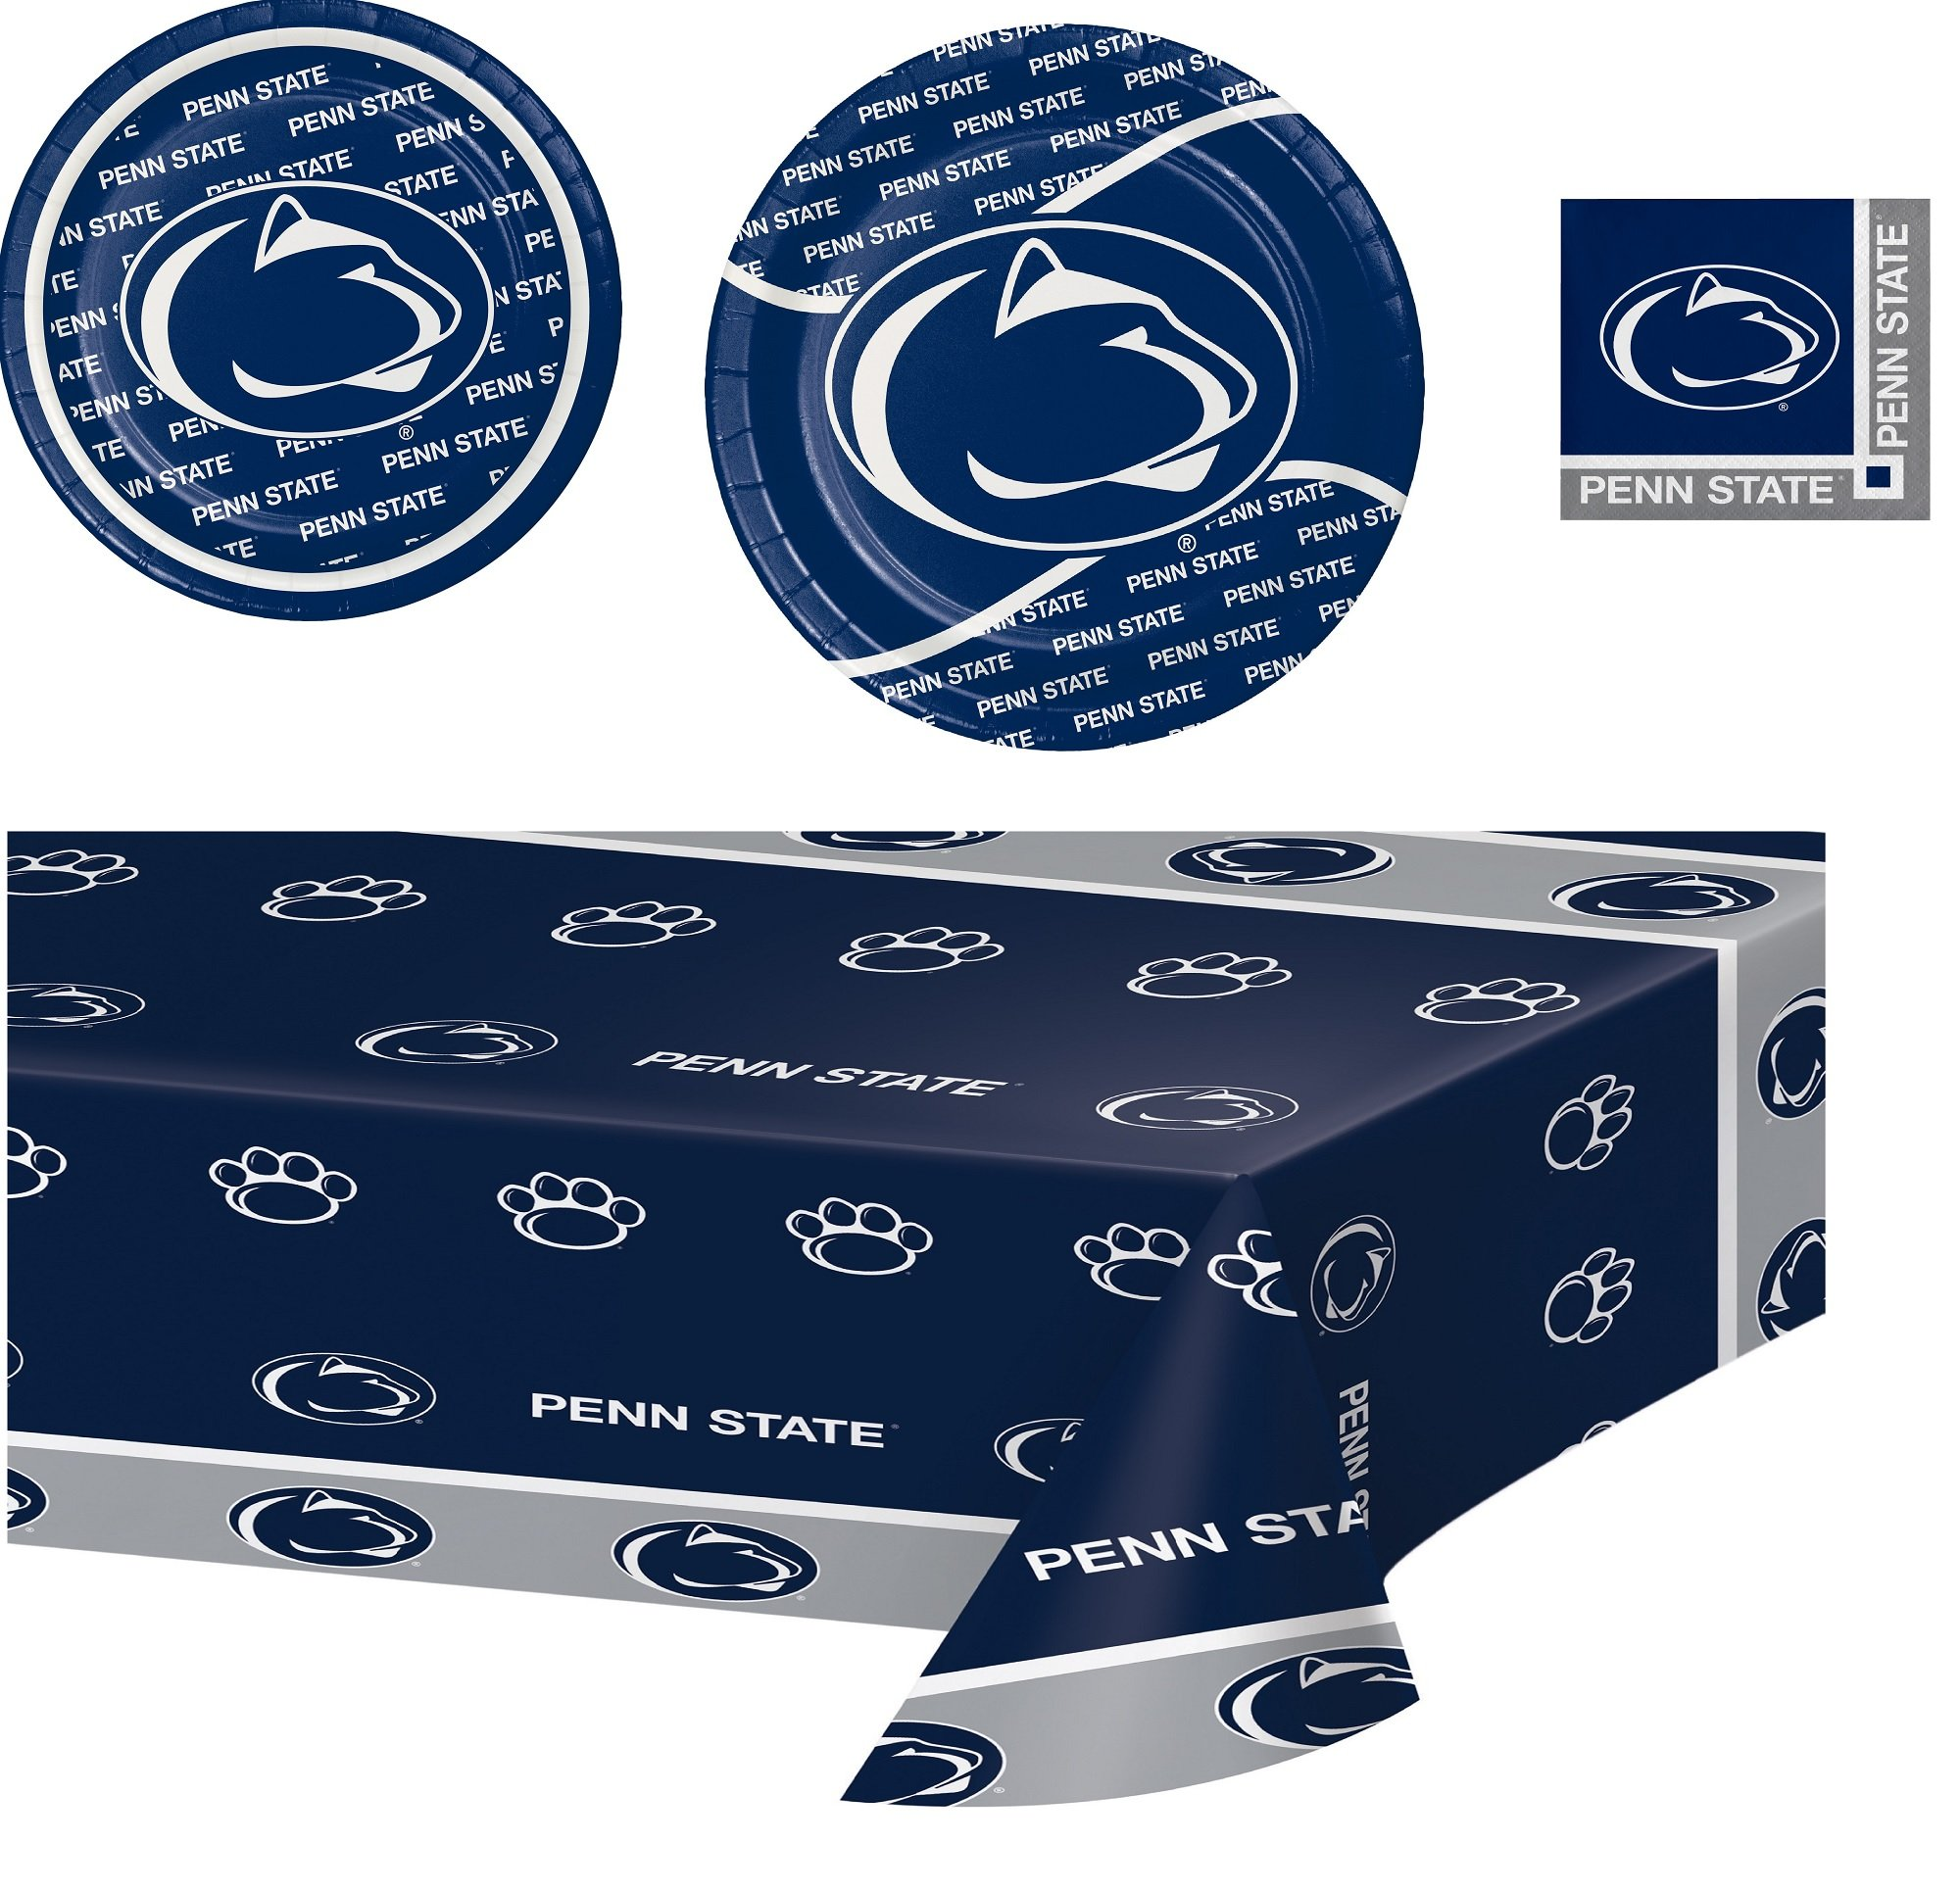 Penn State Nittany Lions Party Supplies Bundle (Serve 16 with Cloth)